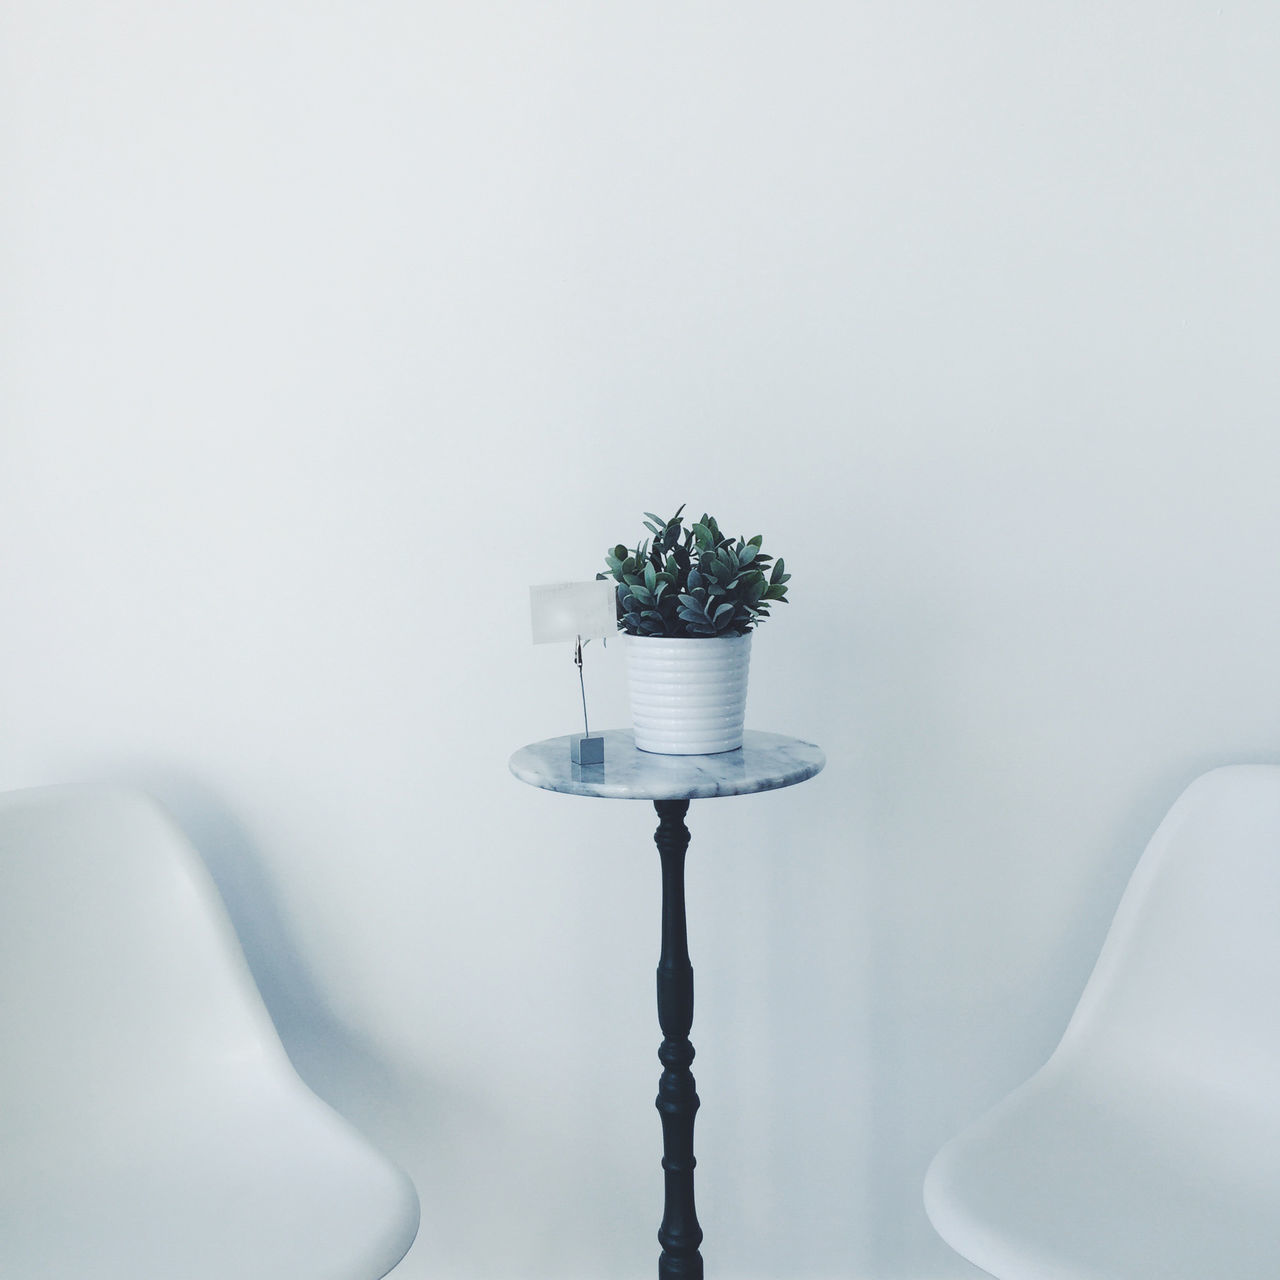 Table in a modern, minimalistic setting in St. Petersburg, USA. Chair Day Florida Indoors  Indoors  IPhone IPhoneography Marmo Minimalist No People Plant Simplicity Square St Petersburg Table USA White Background White Color